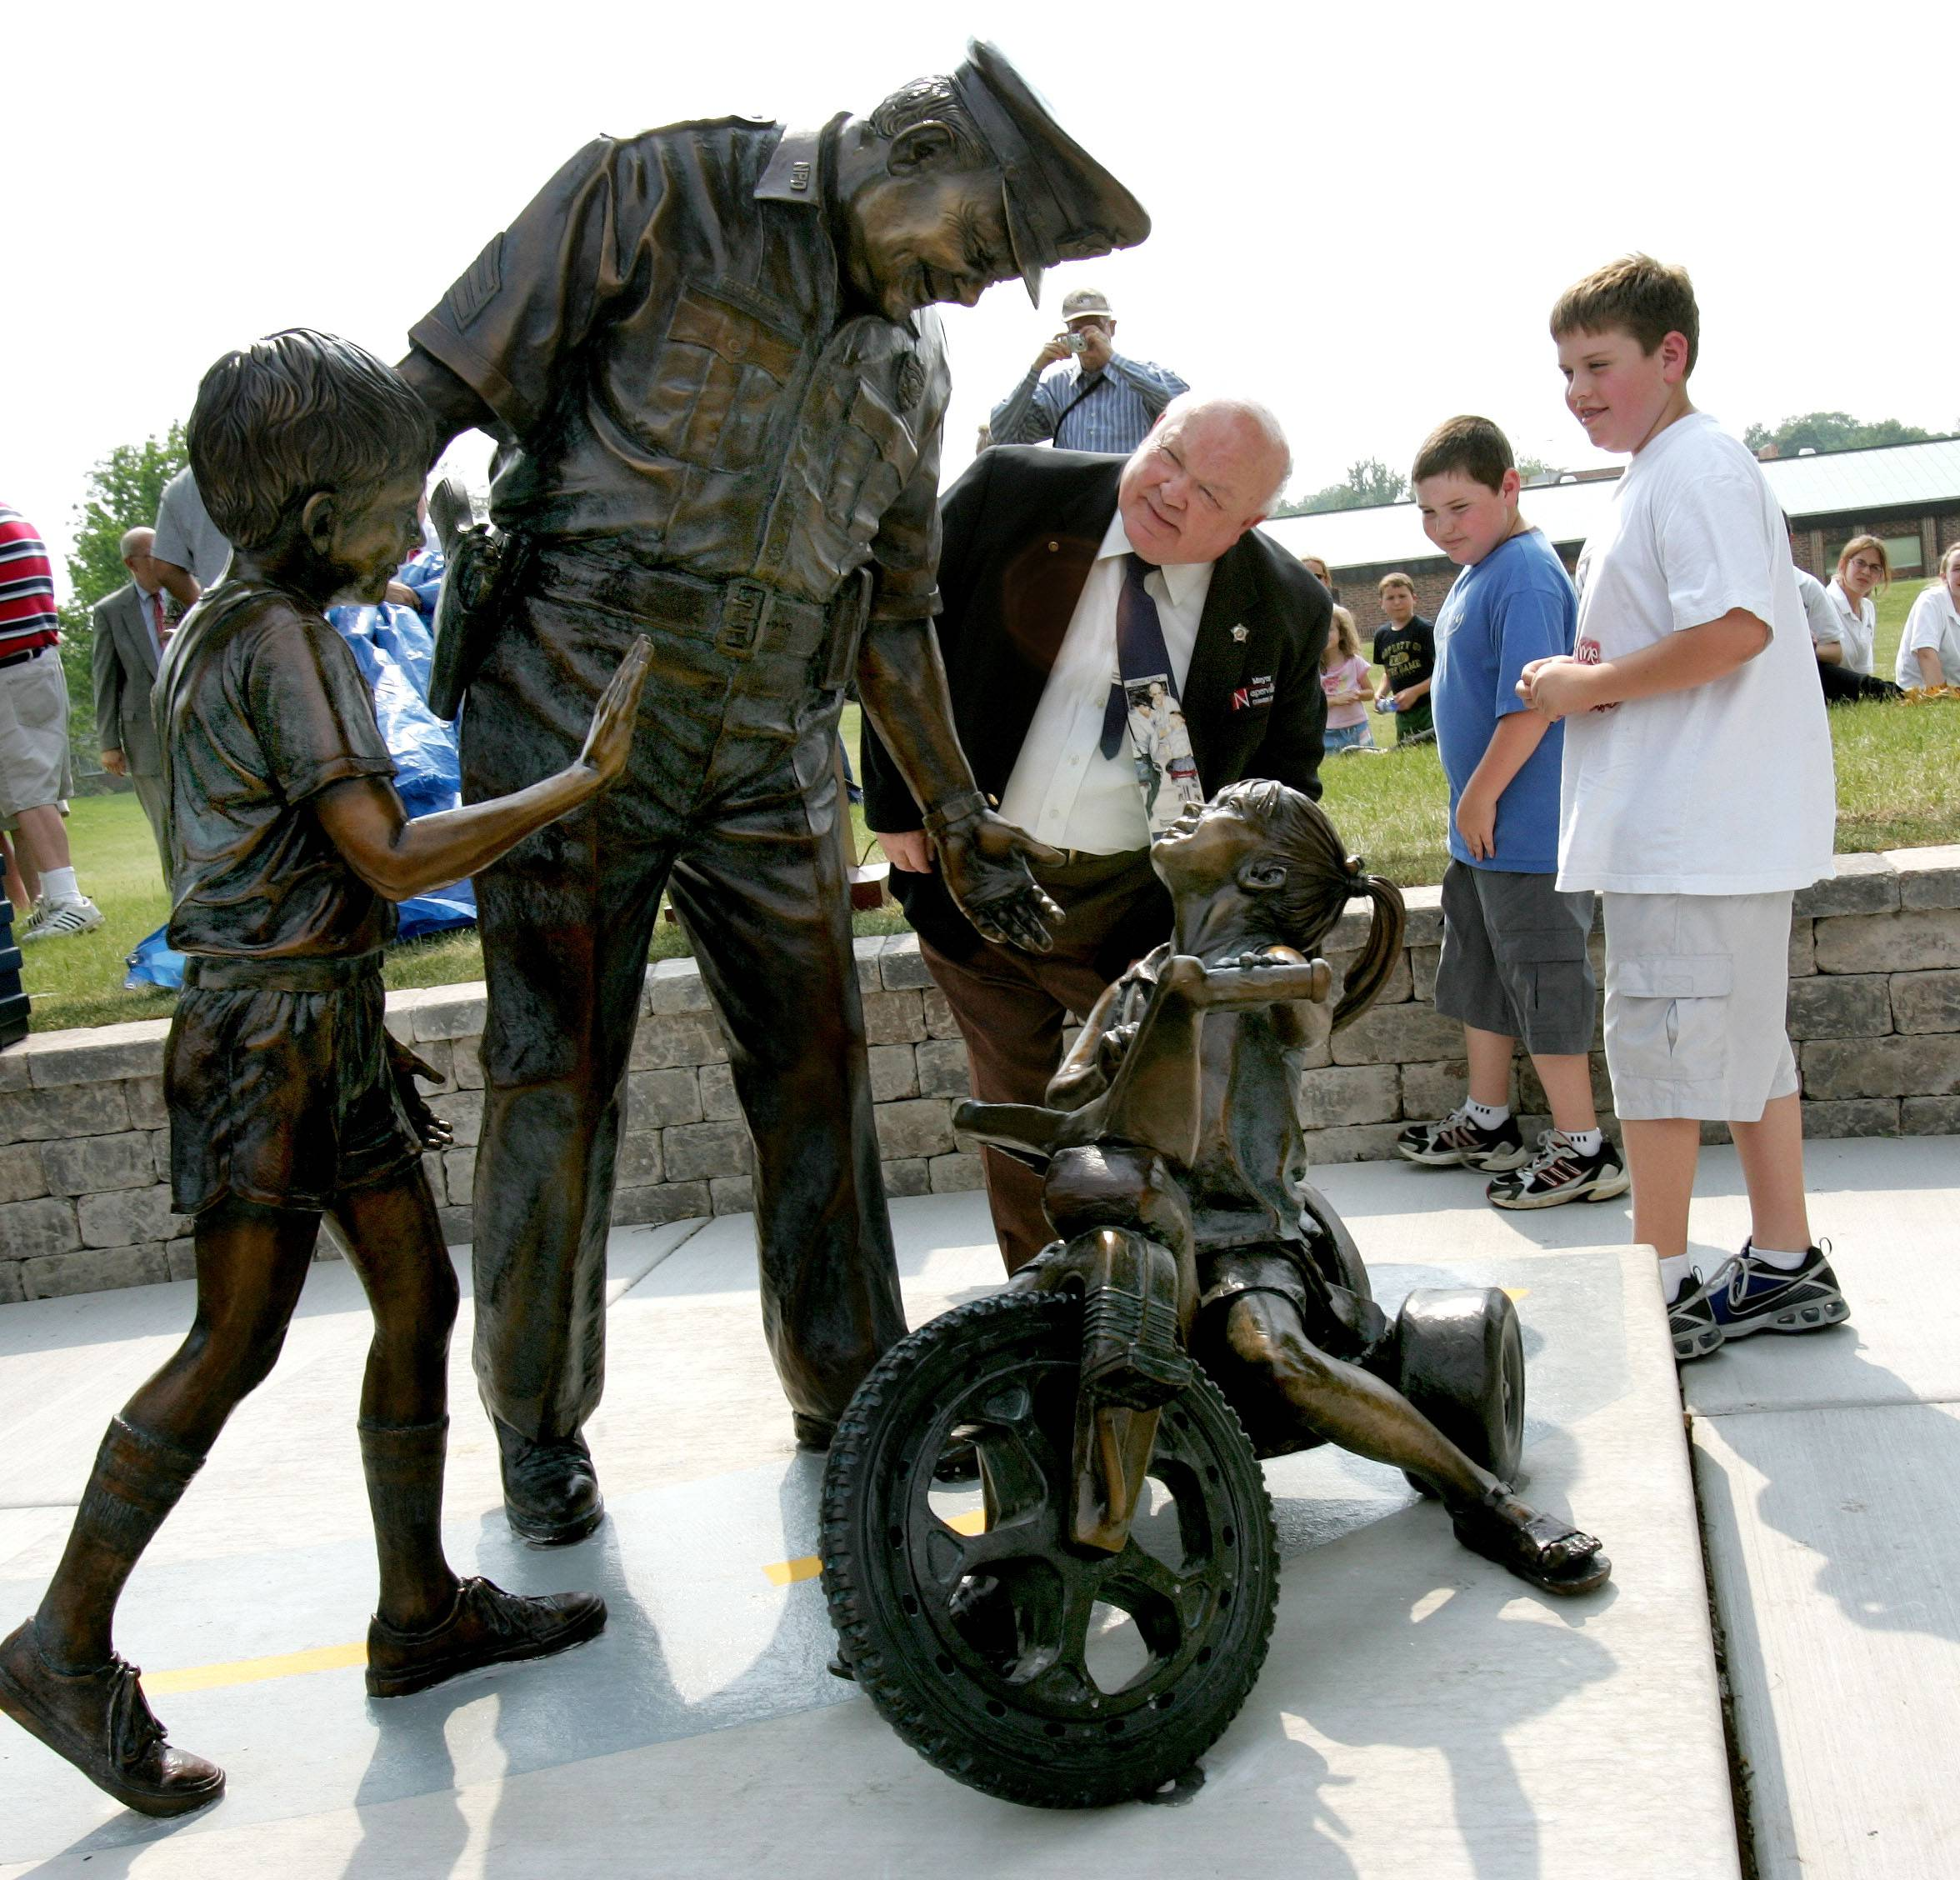 With his grandsons Zach and Nick, Pradel checks out his likeness during the unveiling of the Officer Friendly sculpture in front of Washington Junior High.